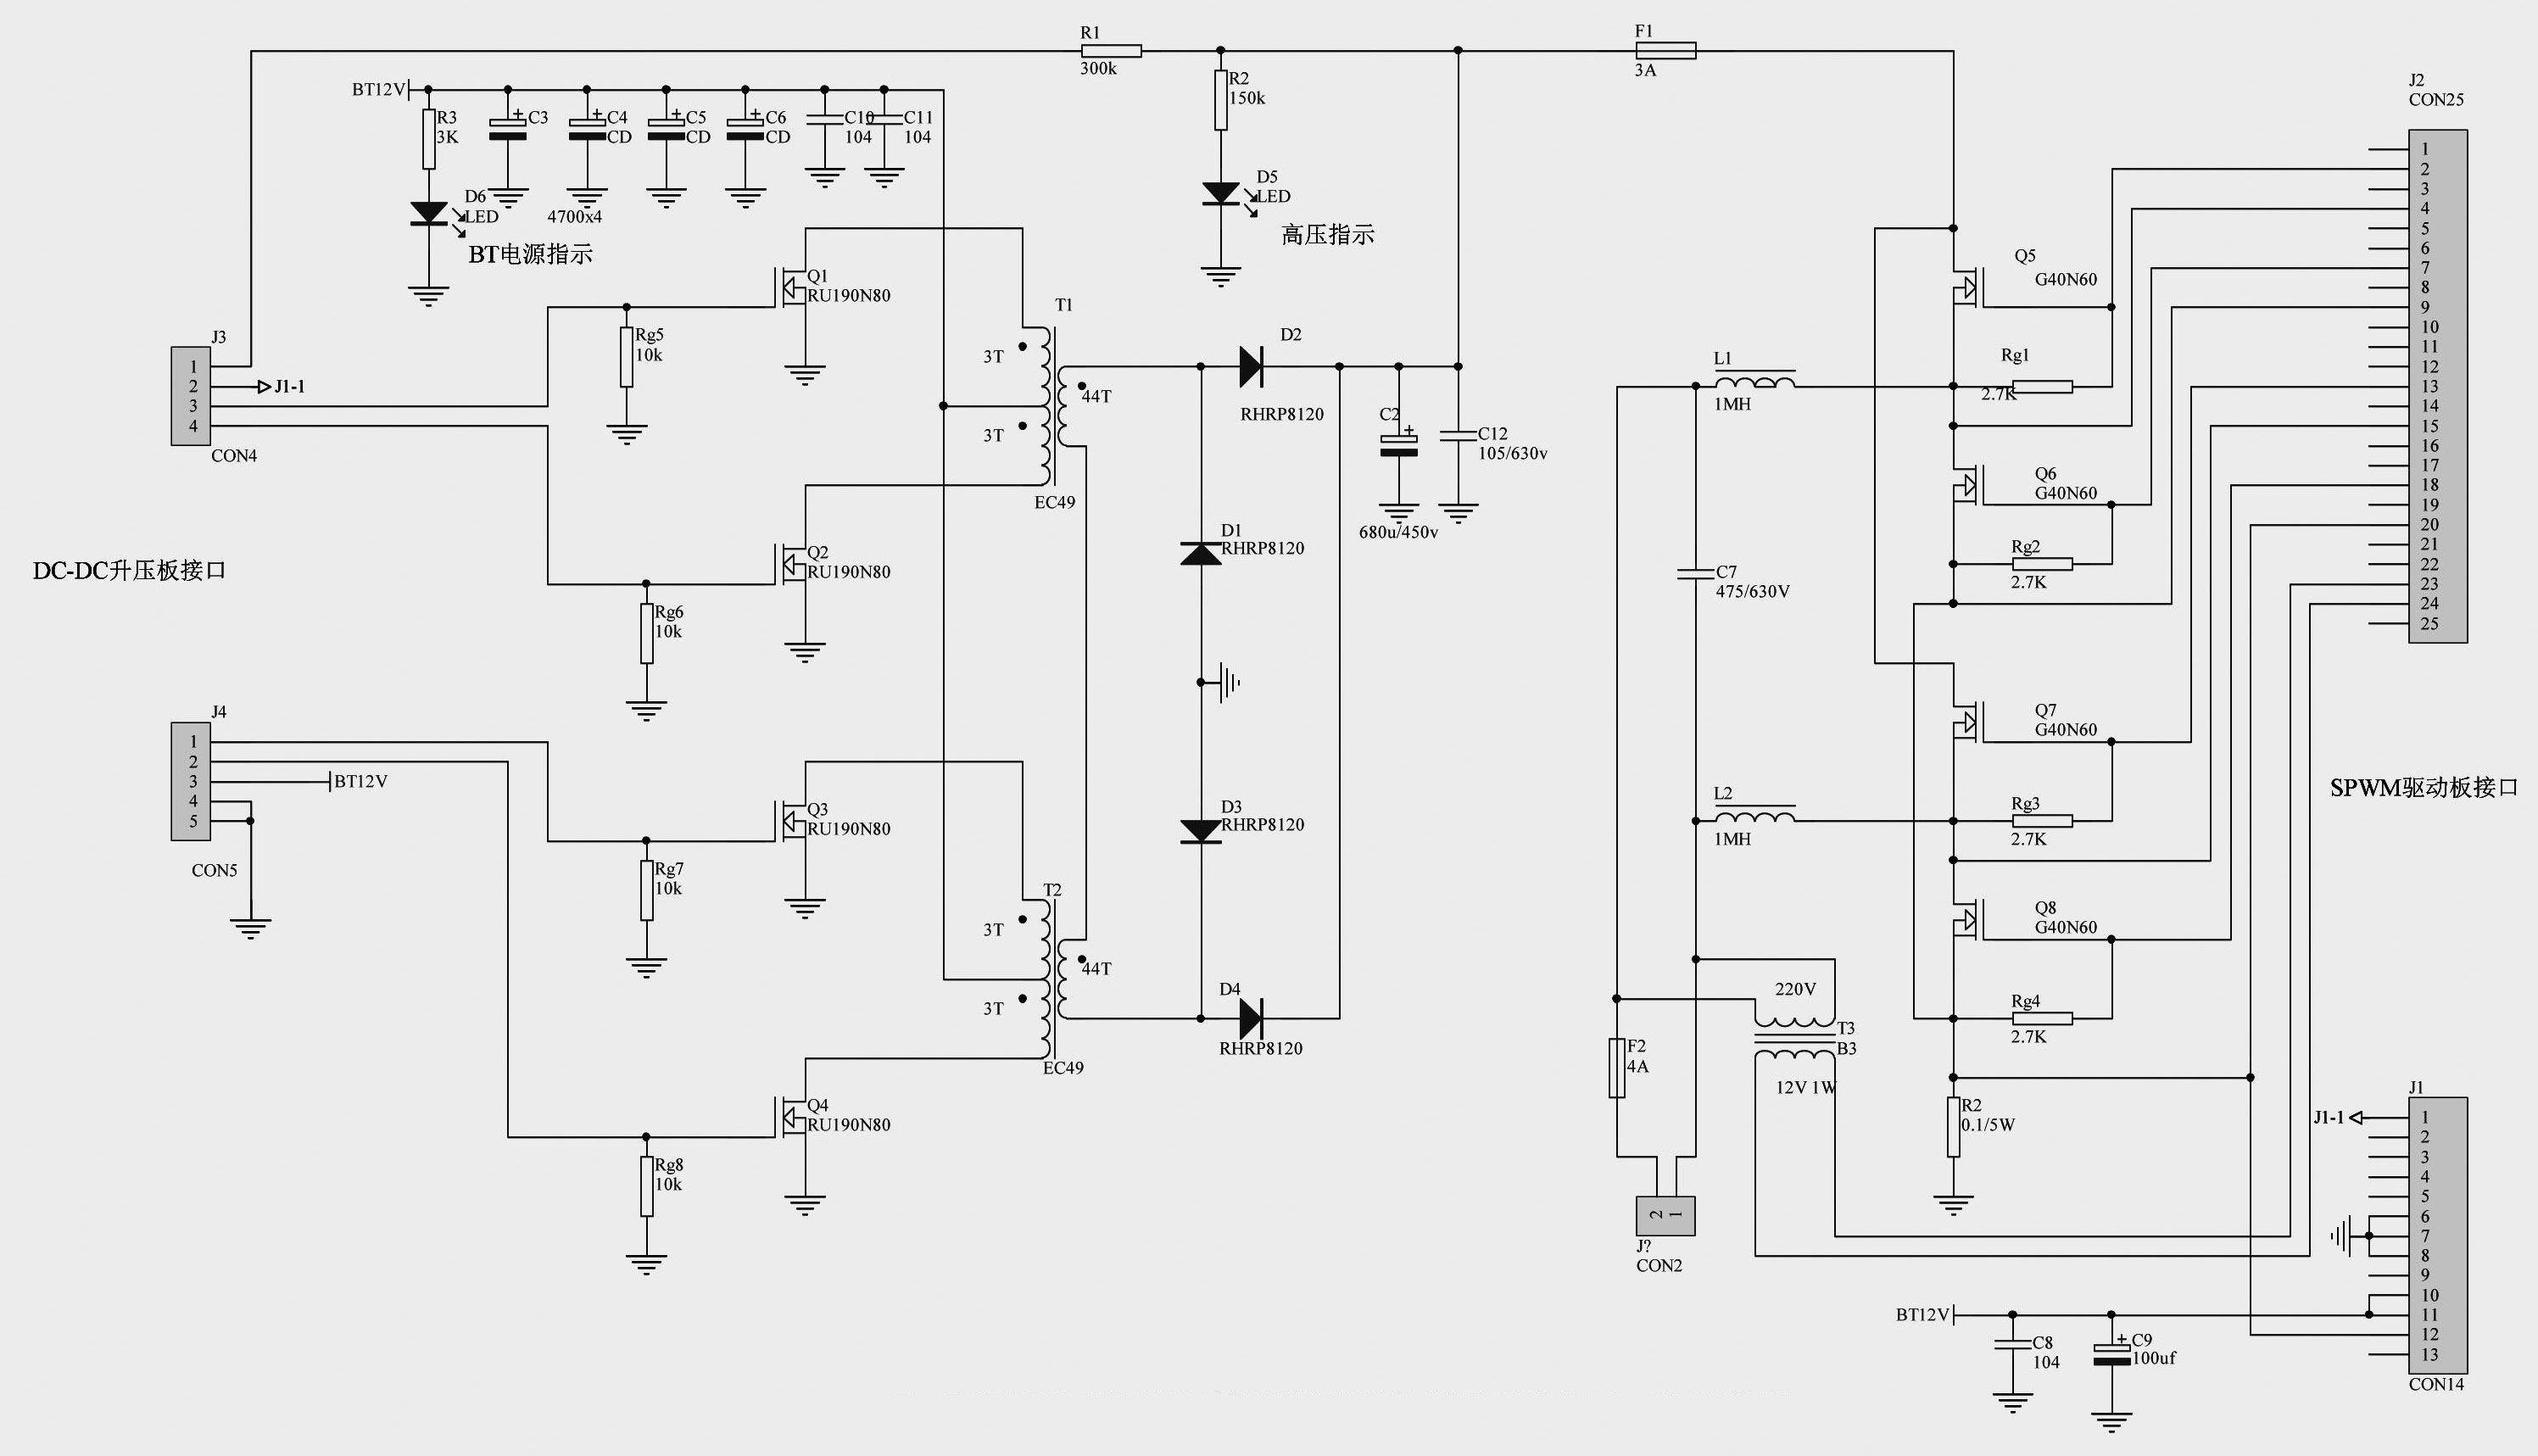 1000 watt inverter master board circuit diagram 12 volt 1000 watt power inverter design process gohz com power inverter wiring diagram at panicattacktreatment.co